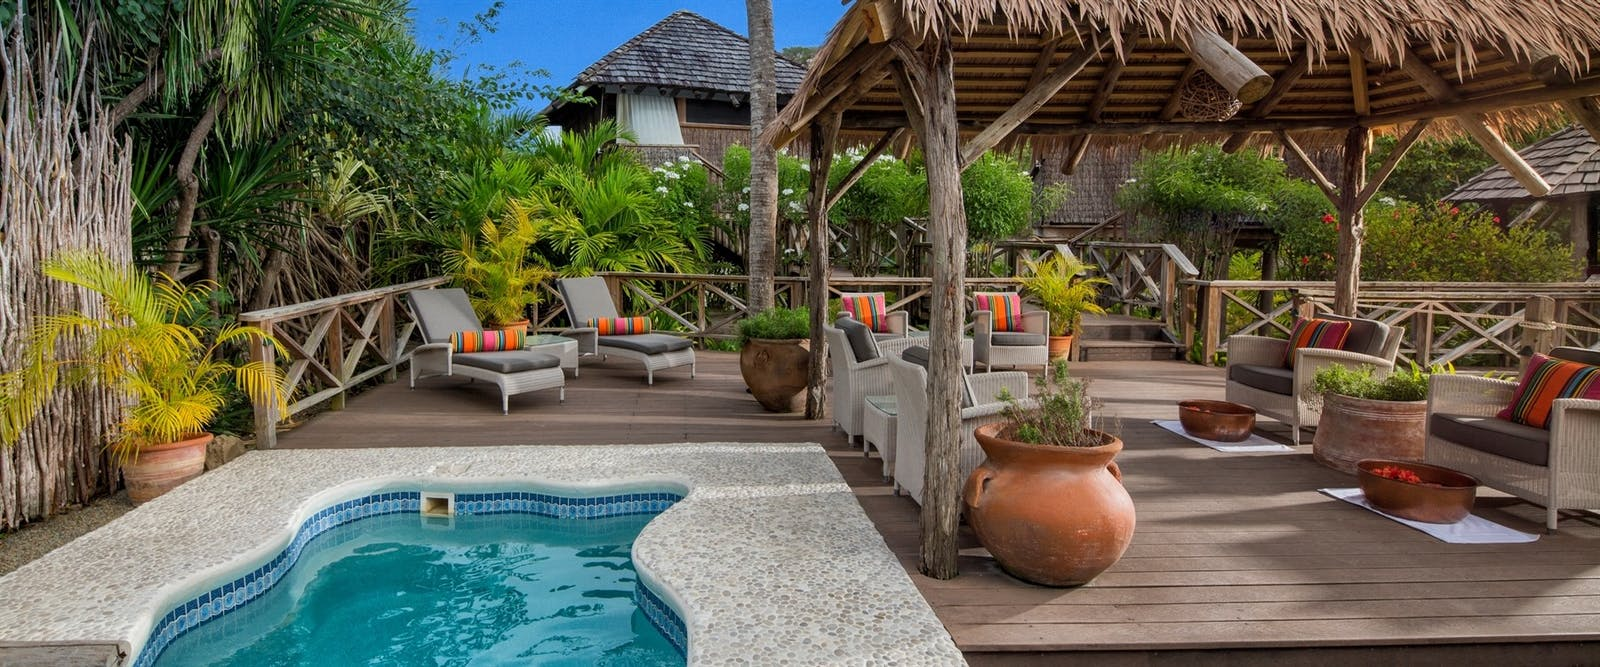 Indulge Spa at Galley Bay Resort & Spa, Antigua